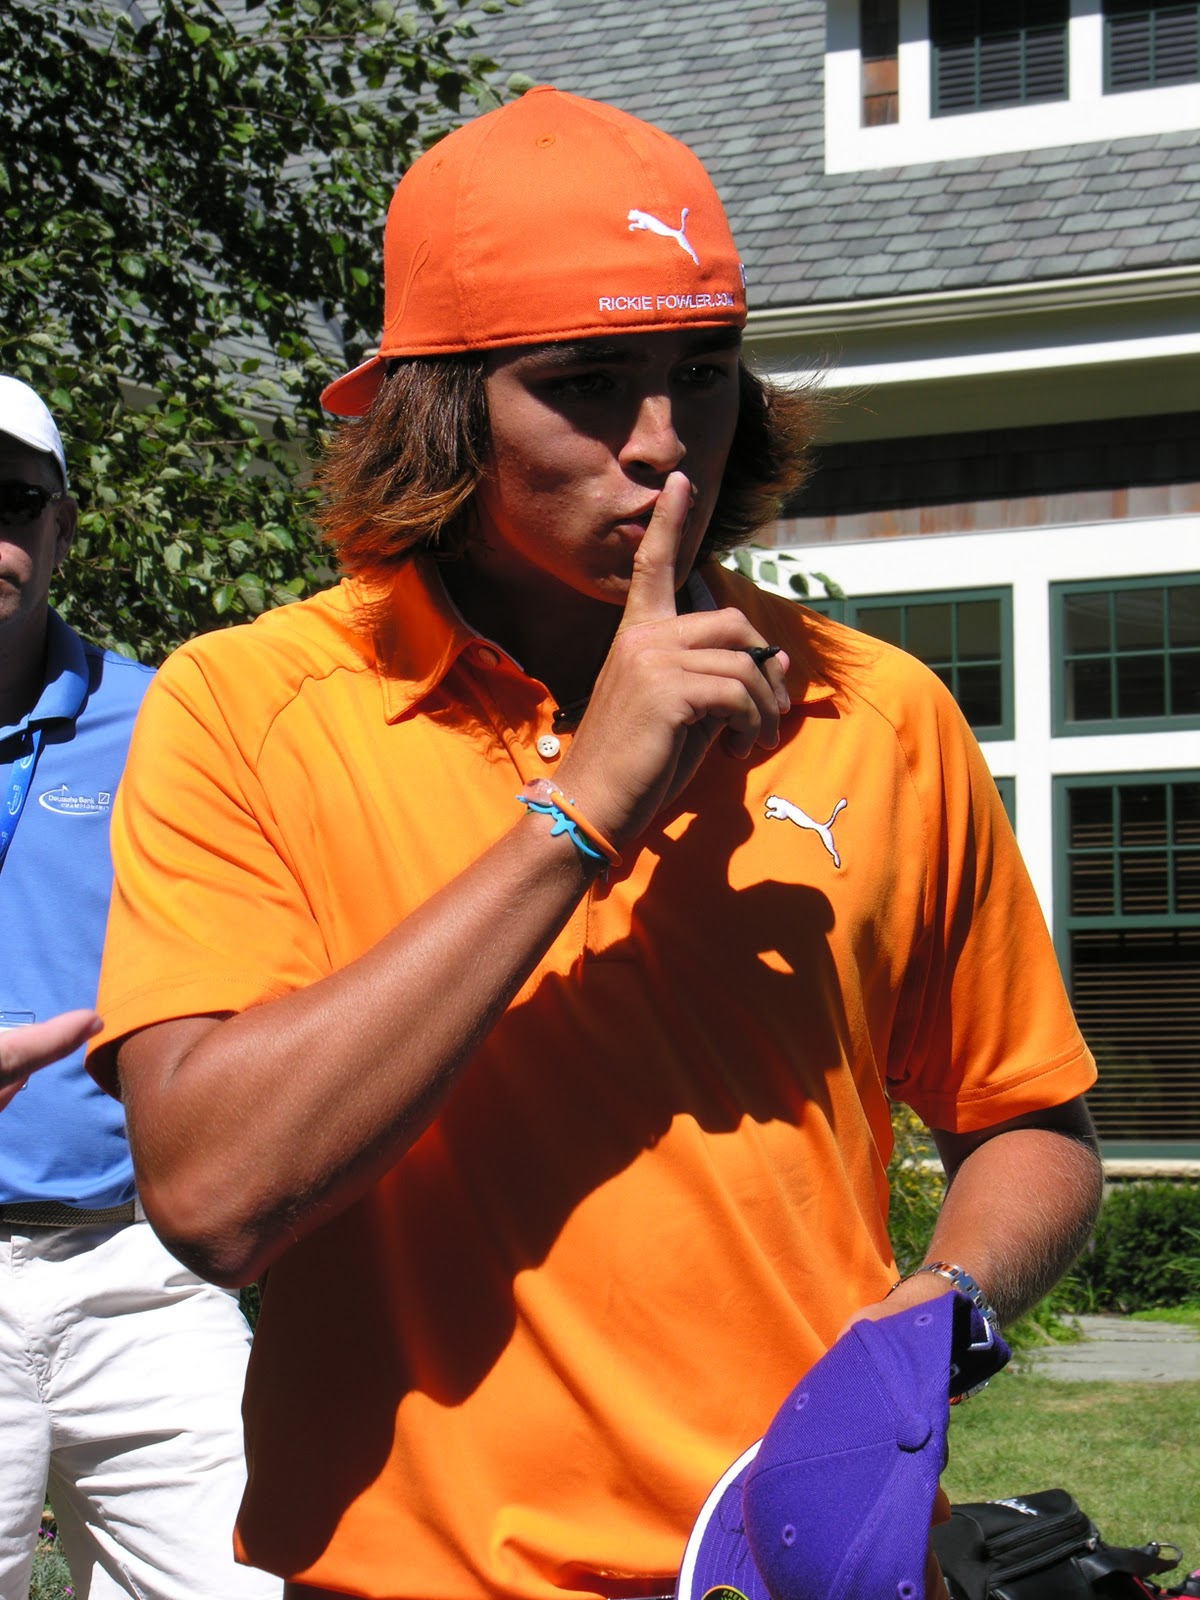 Goldie Bounce Golf  Rickie Fowler f5a4ad54f0